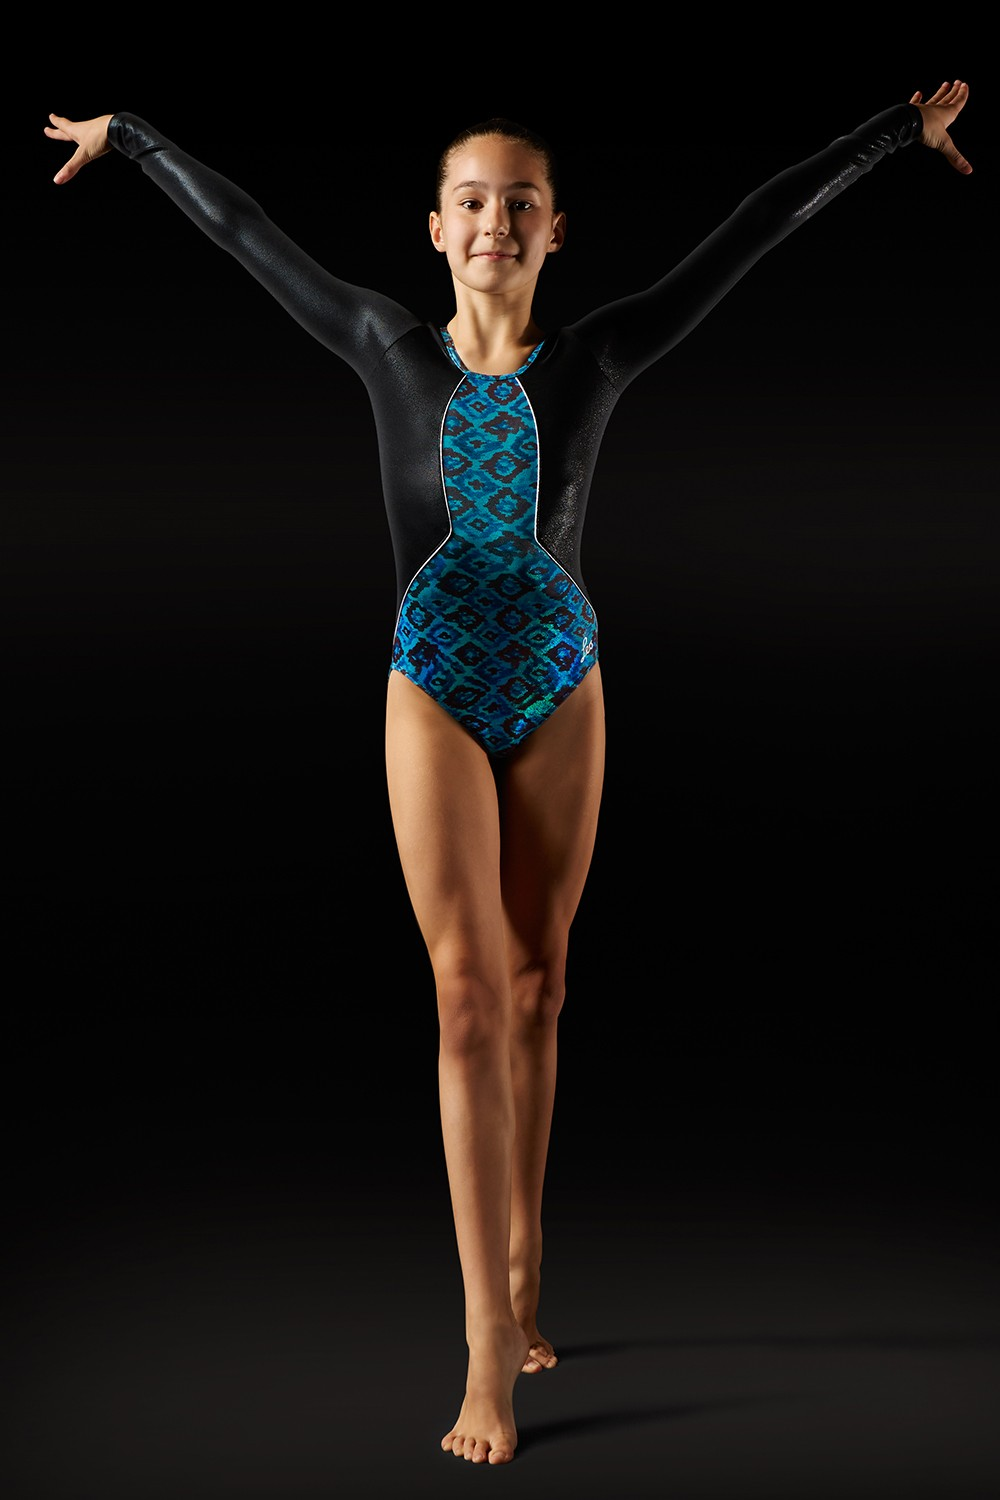 Aztec Langarm Trikot Women's Gymnastics Leotards